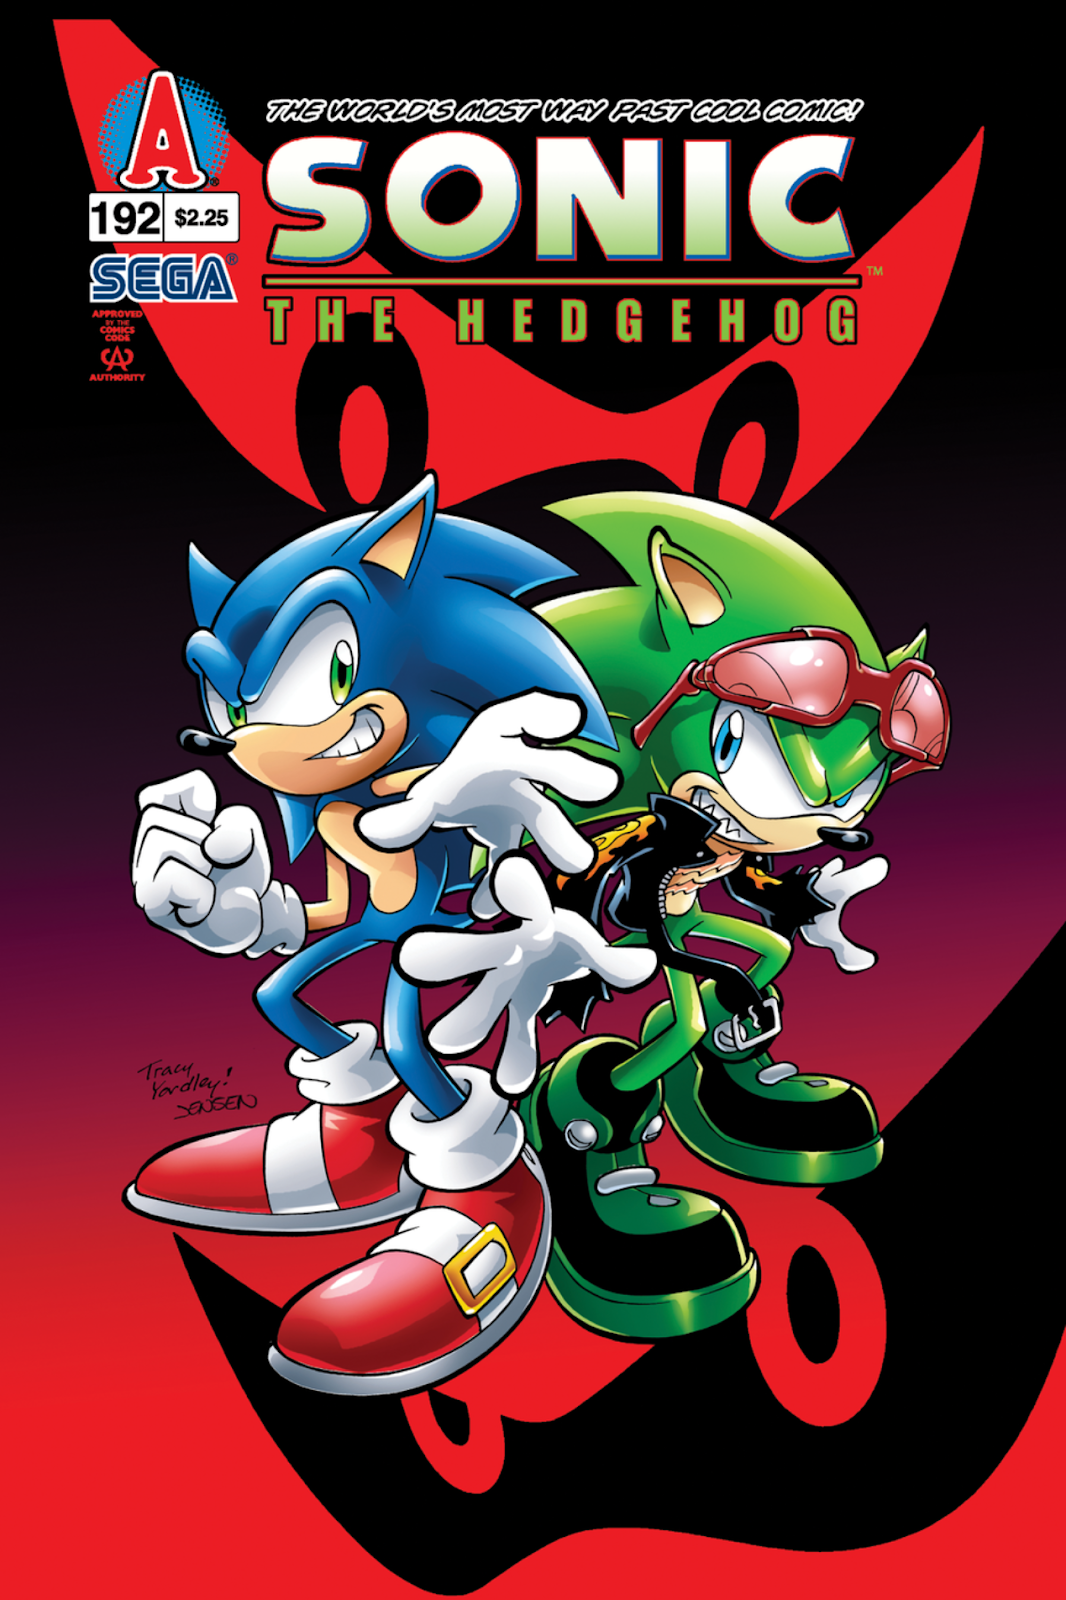 192 Best Images About Tarot: Hedgehogs Can't Swim: THE 2008 SONIC THE HEDGEHOG COMIC